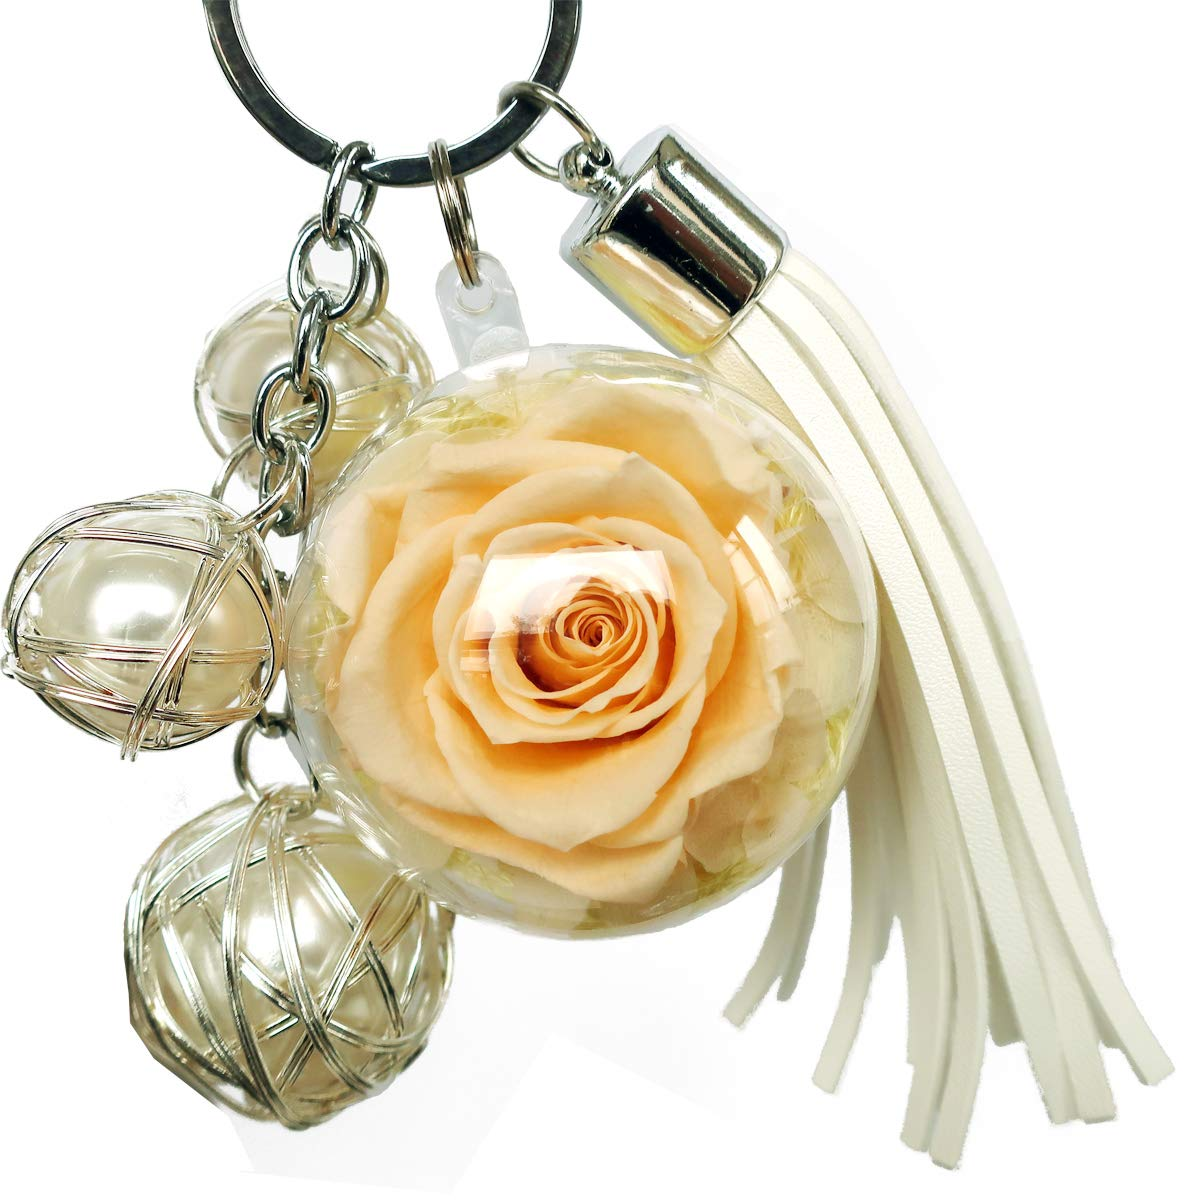 preserved real rose in a acrylic ball,with 3 pearls and Tassels and Key chain,a Decor for handbag, a perfect Gift for Sister, Girls, Mother's Day, Valentine's Day, Anniversary, Birthday (yellow)